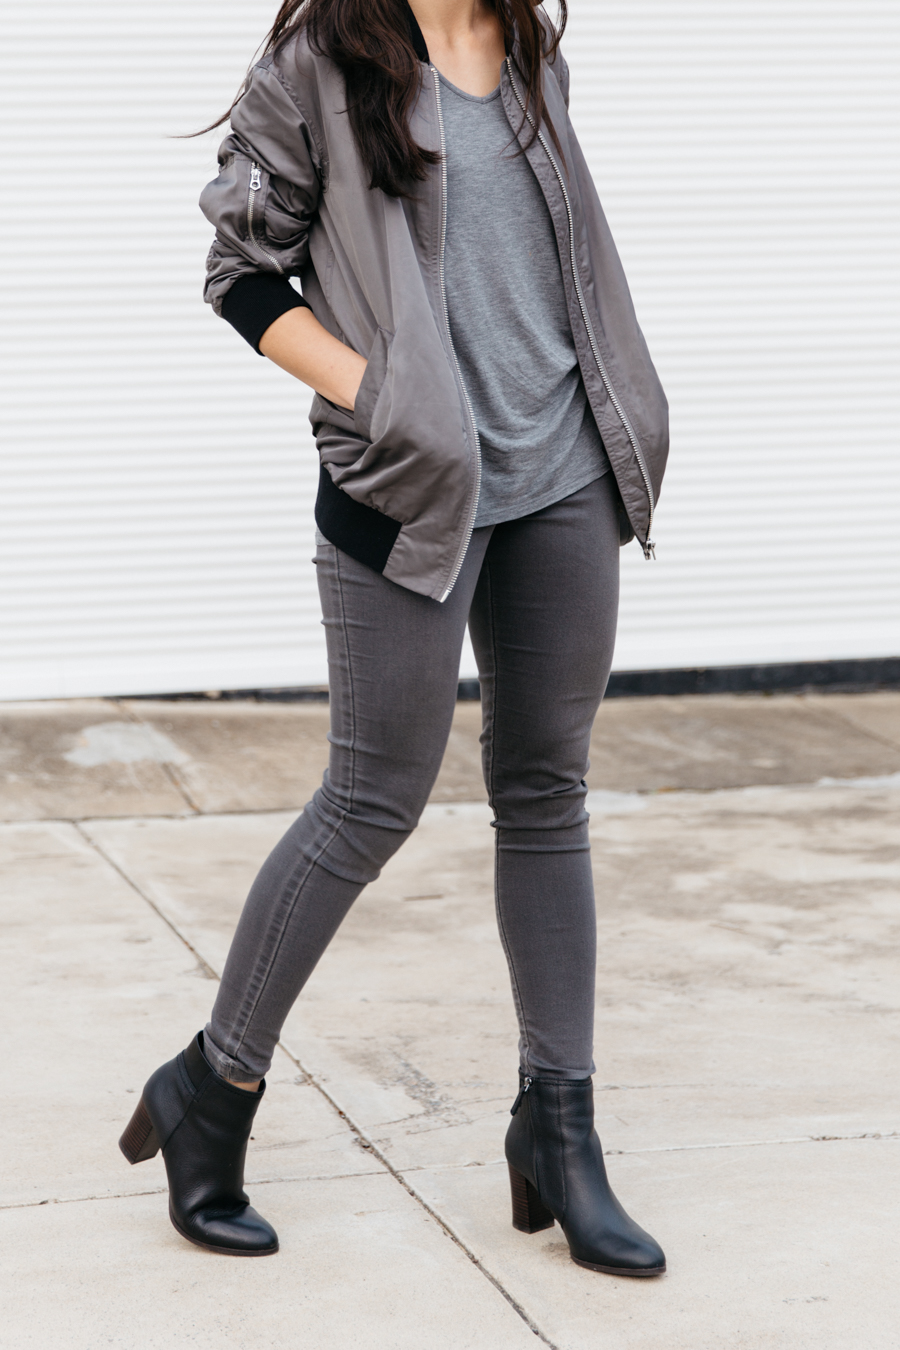 Grey & black outfit for autumn.